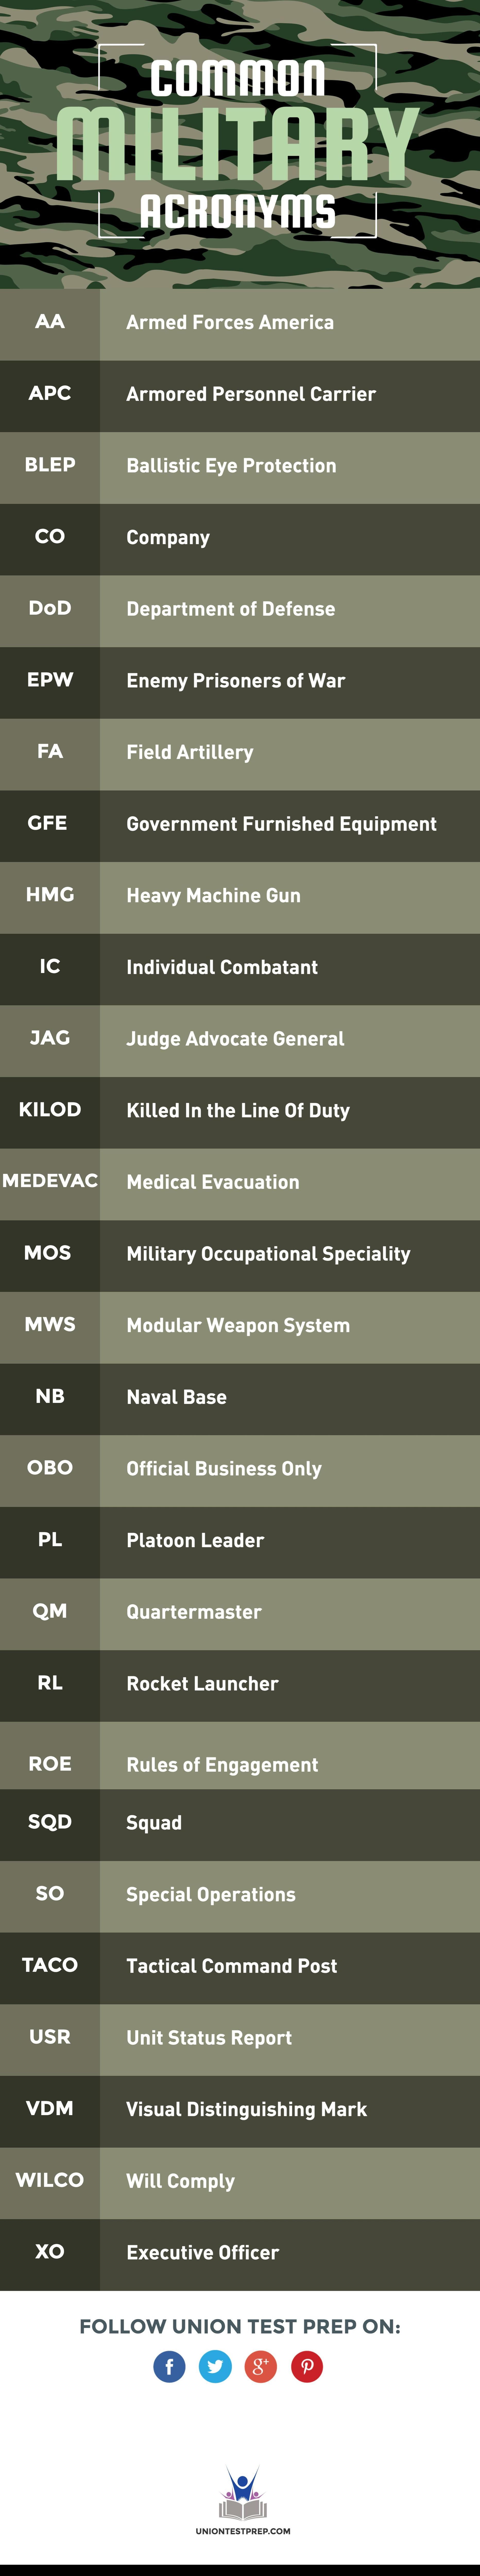 Common military acronyms. Great information for anyone who